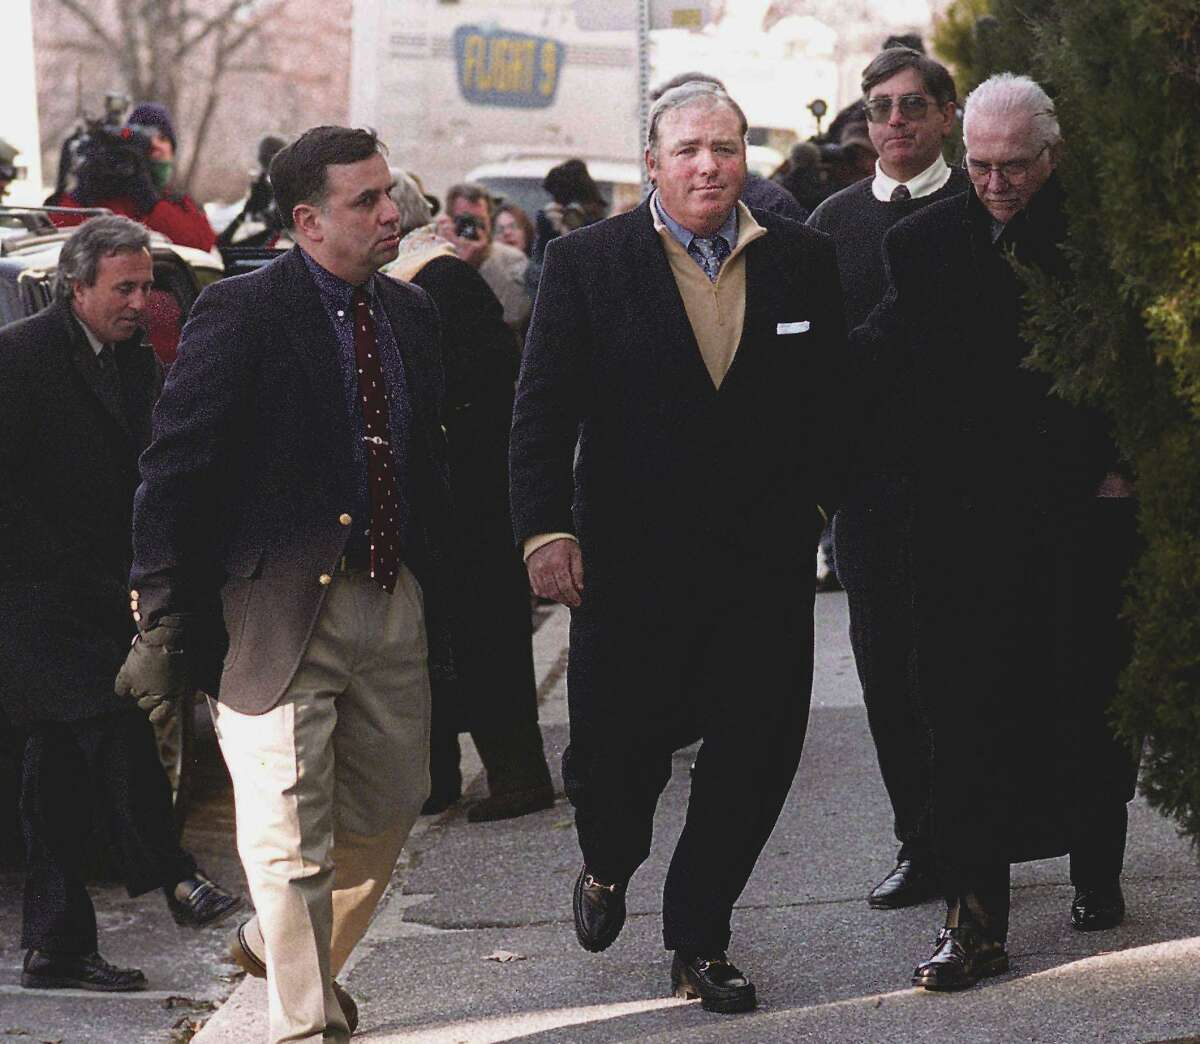 Michael Skakel, center, is led into Greenwich police headquarters by Frank Garr, right, where he was arrested and processed for the murder of Martha Moxley which occured on Oct 30th, 1975. Garr was the lead Greenwich police investigator on the case. At the far left is Skakel's lawyer, Mickey Sherman.